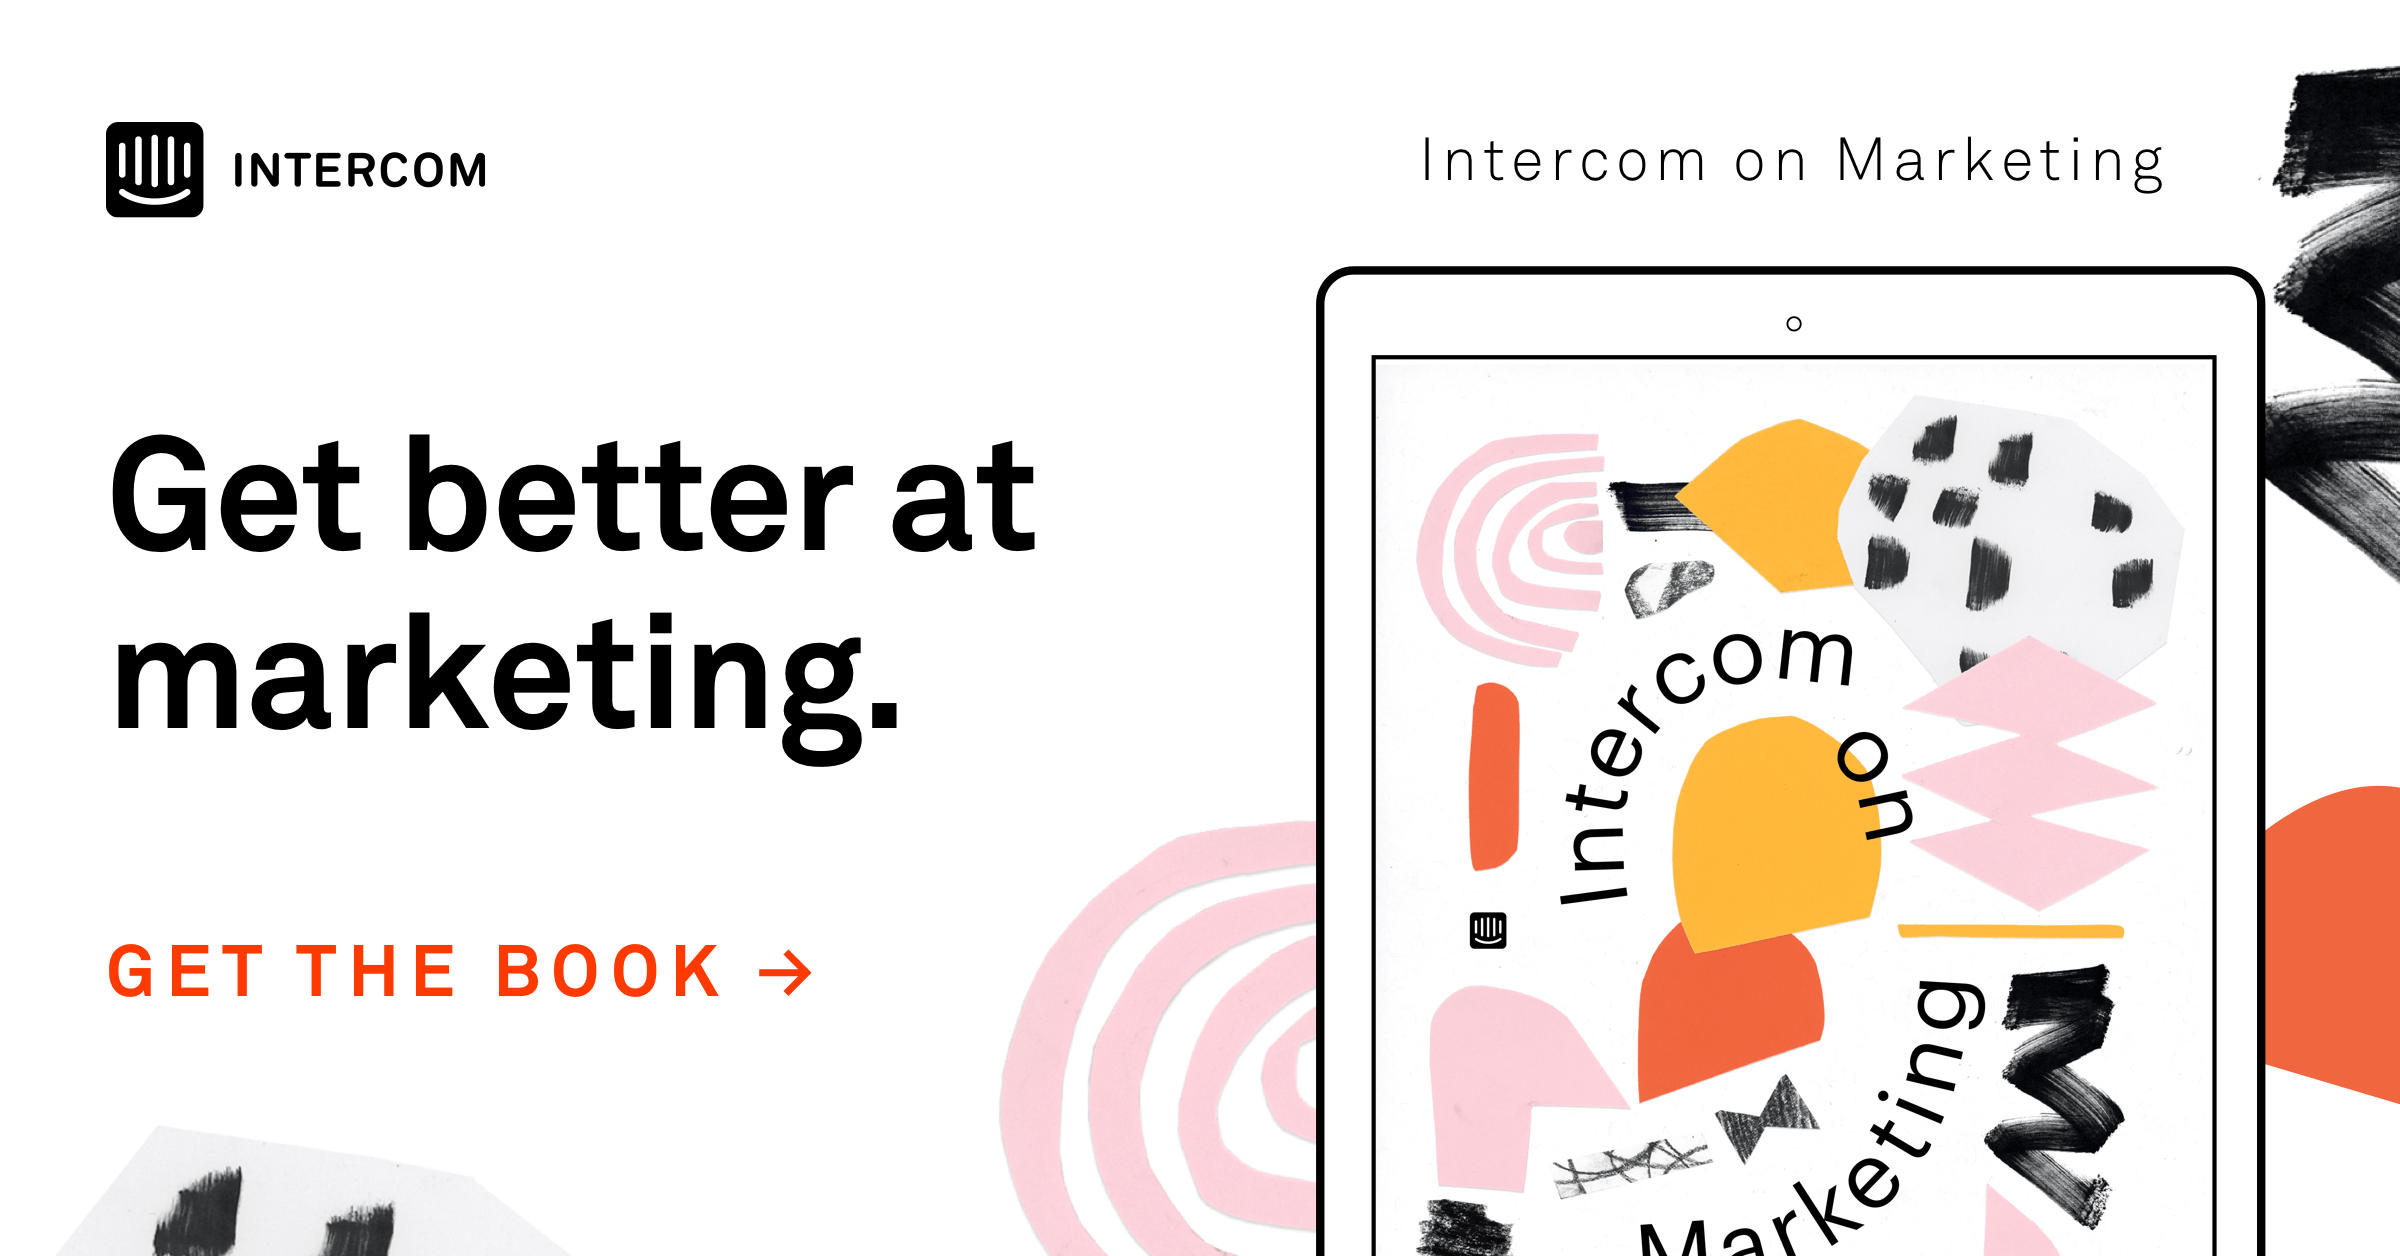 Intercom on Marketing blog CTA